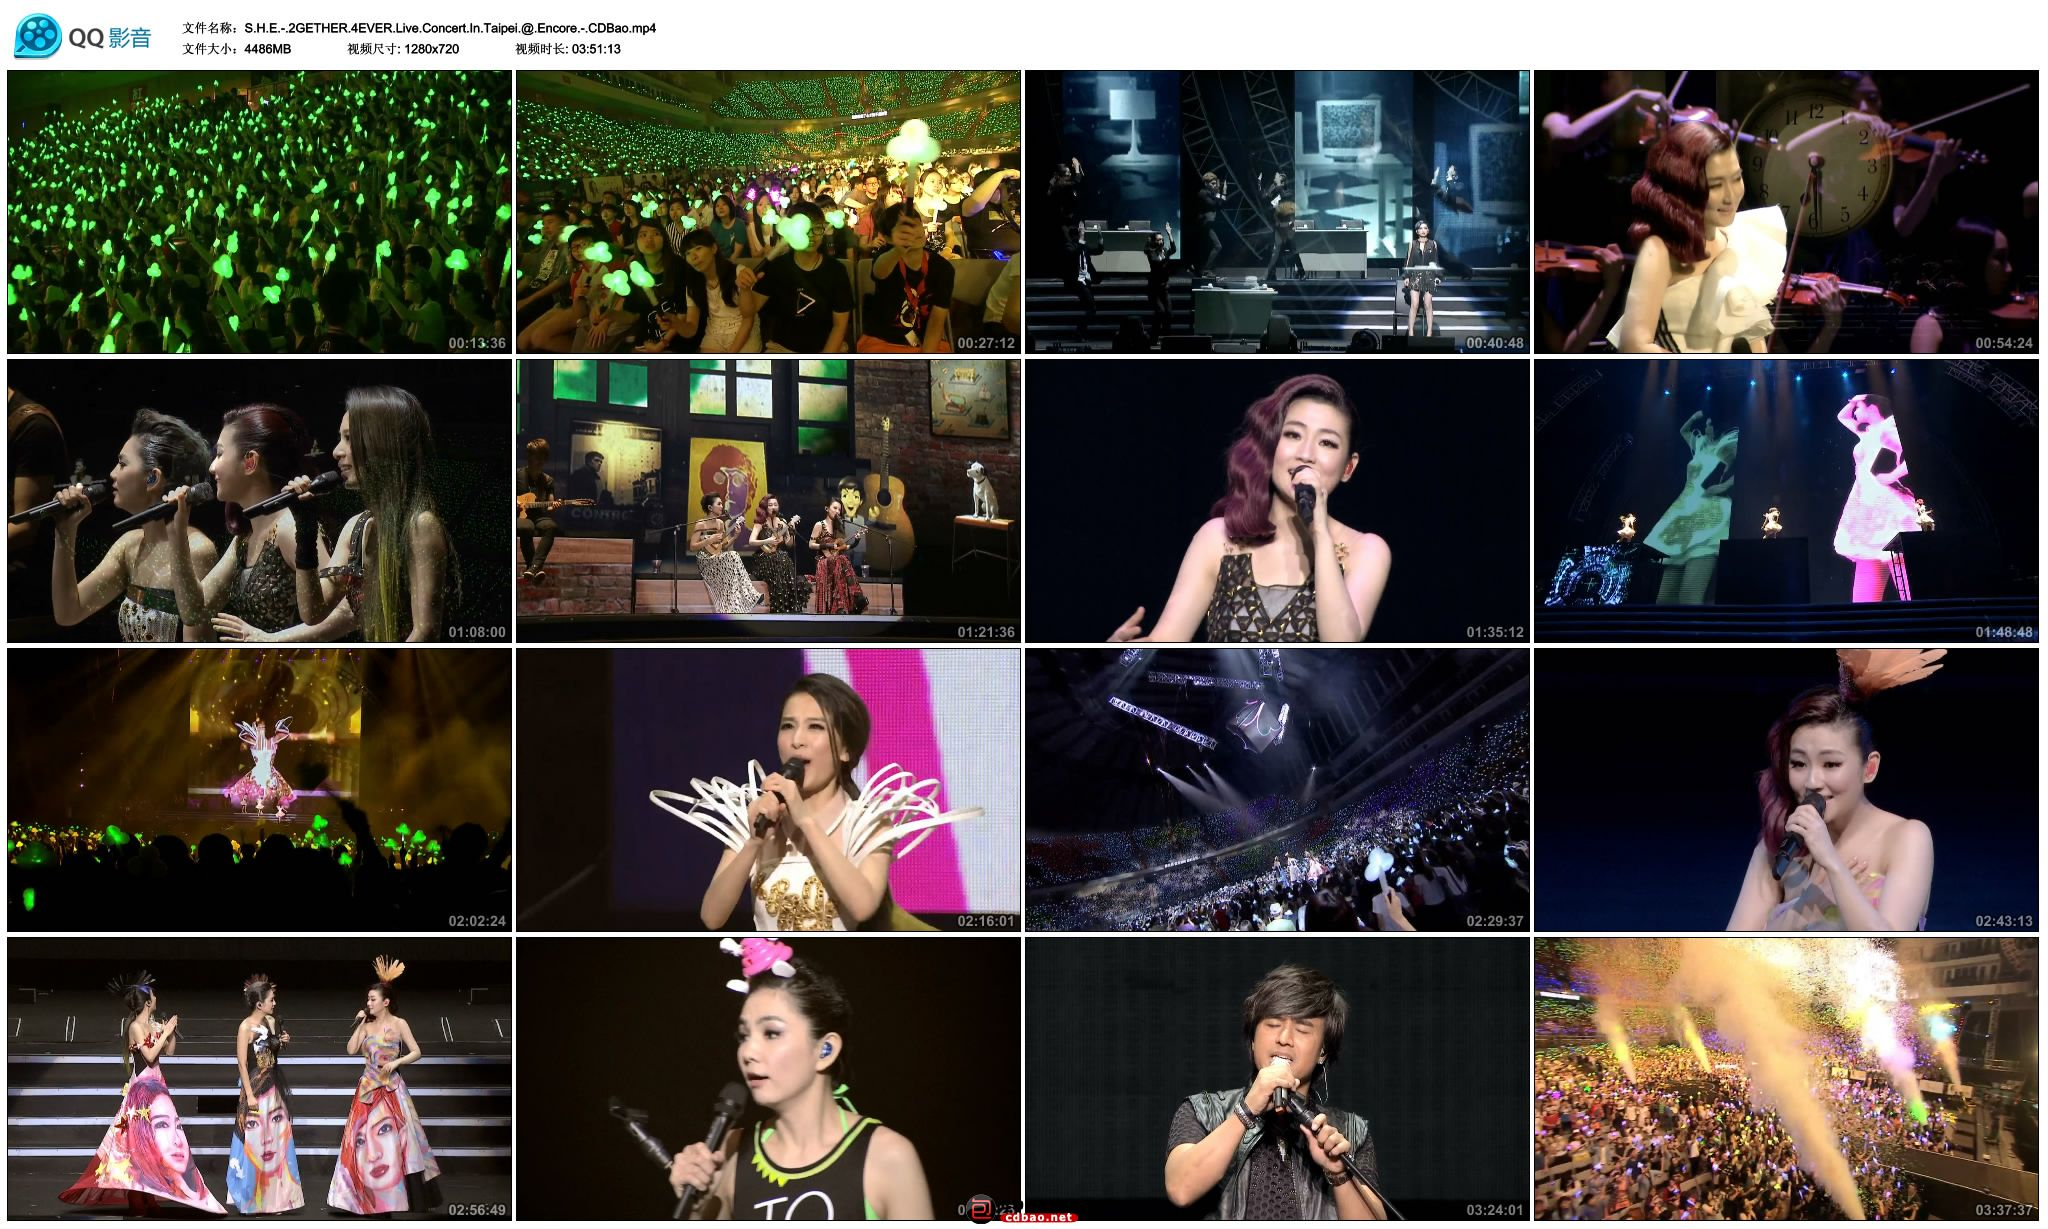 S.H.E.-.2GETHER.4EVER.Live.Concert.In.Taipei.@.Encore.-.CDBao.mp4_thumbs_2015.07.jpg